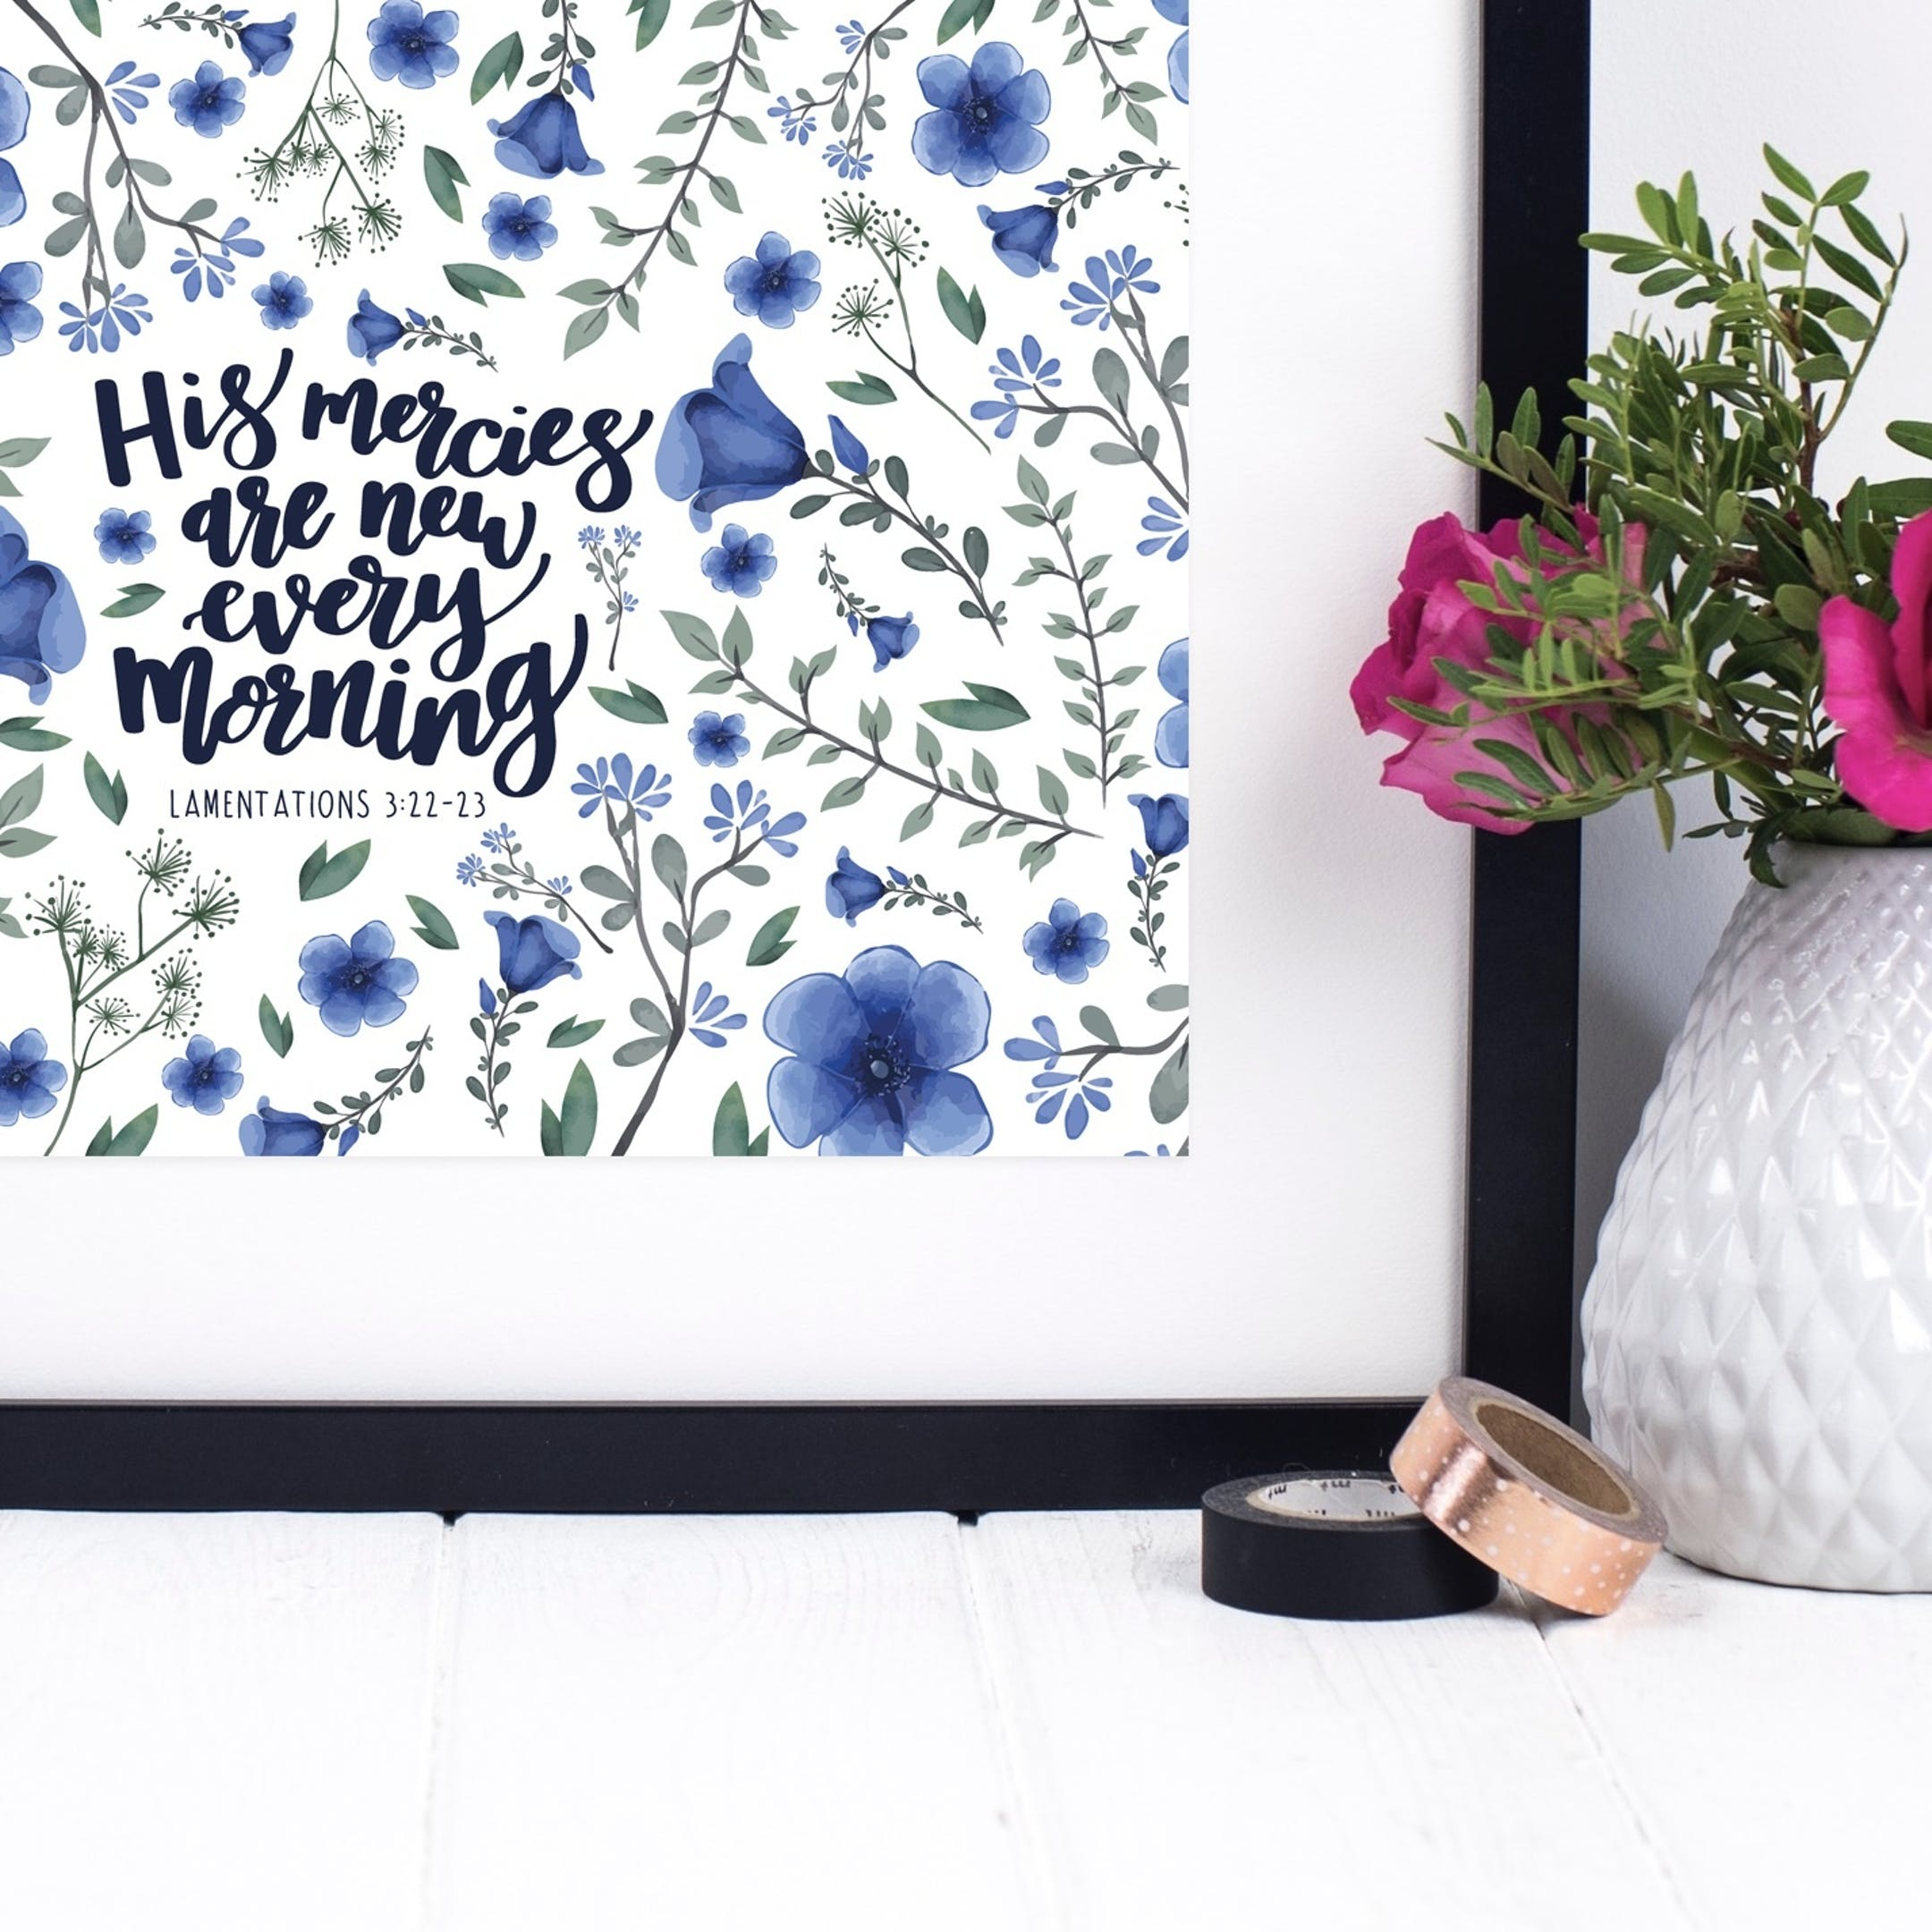 Floral Print - His Mercies Are New Every Morning Print - Lamentations 3:22-23 - Izzy and Pop